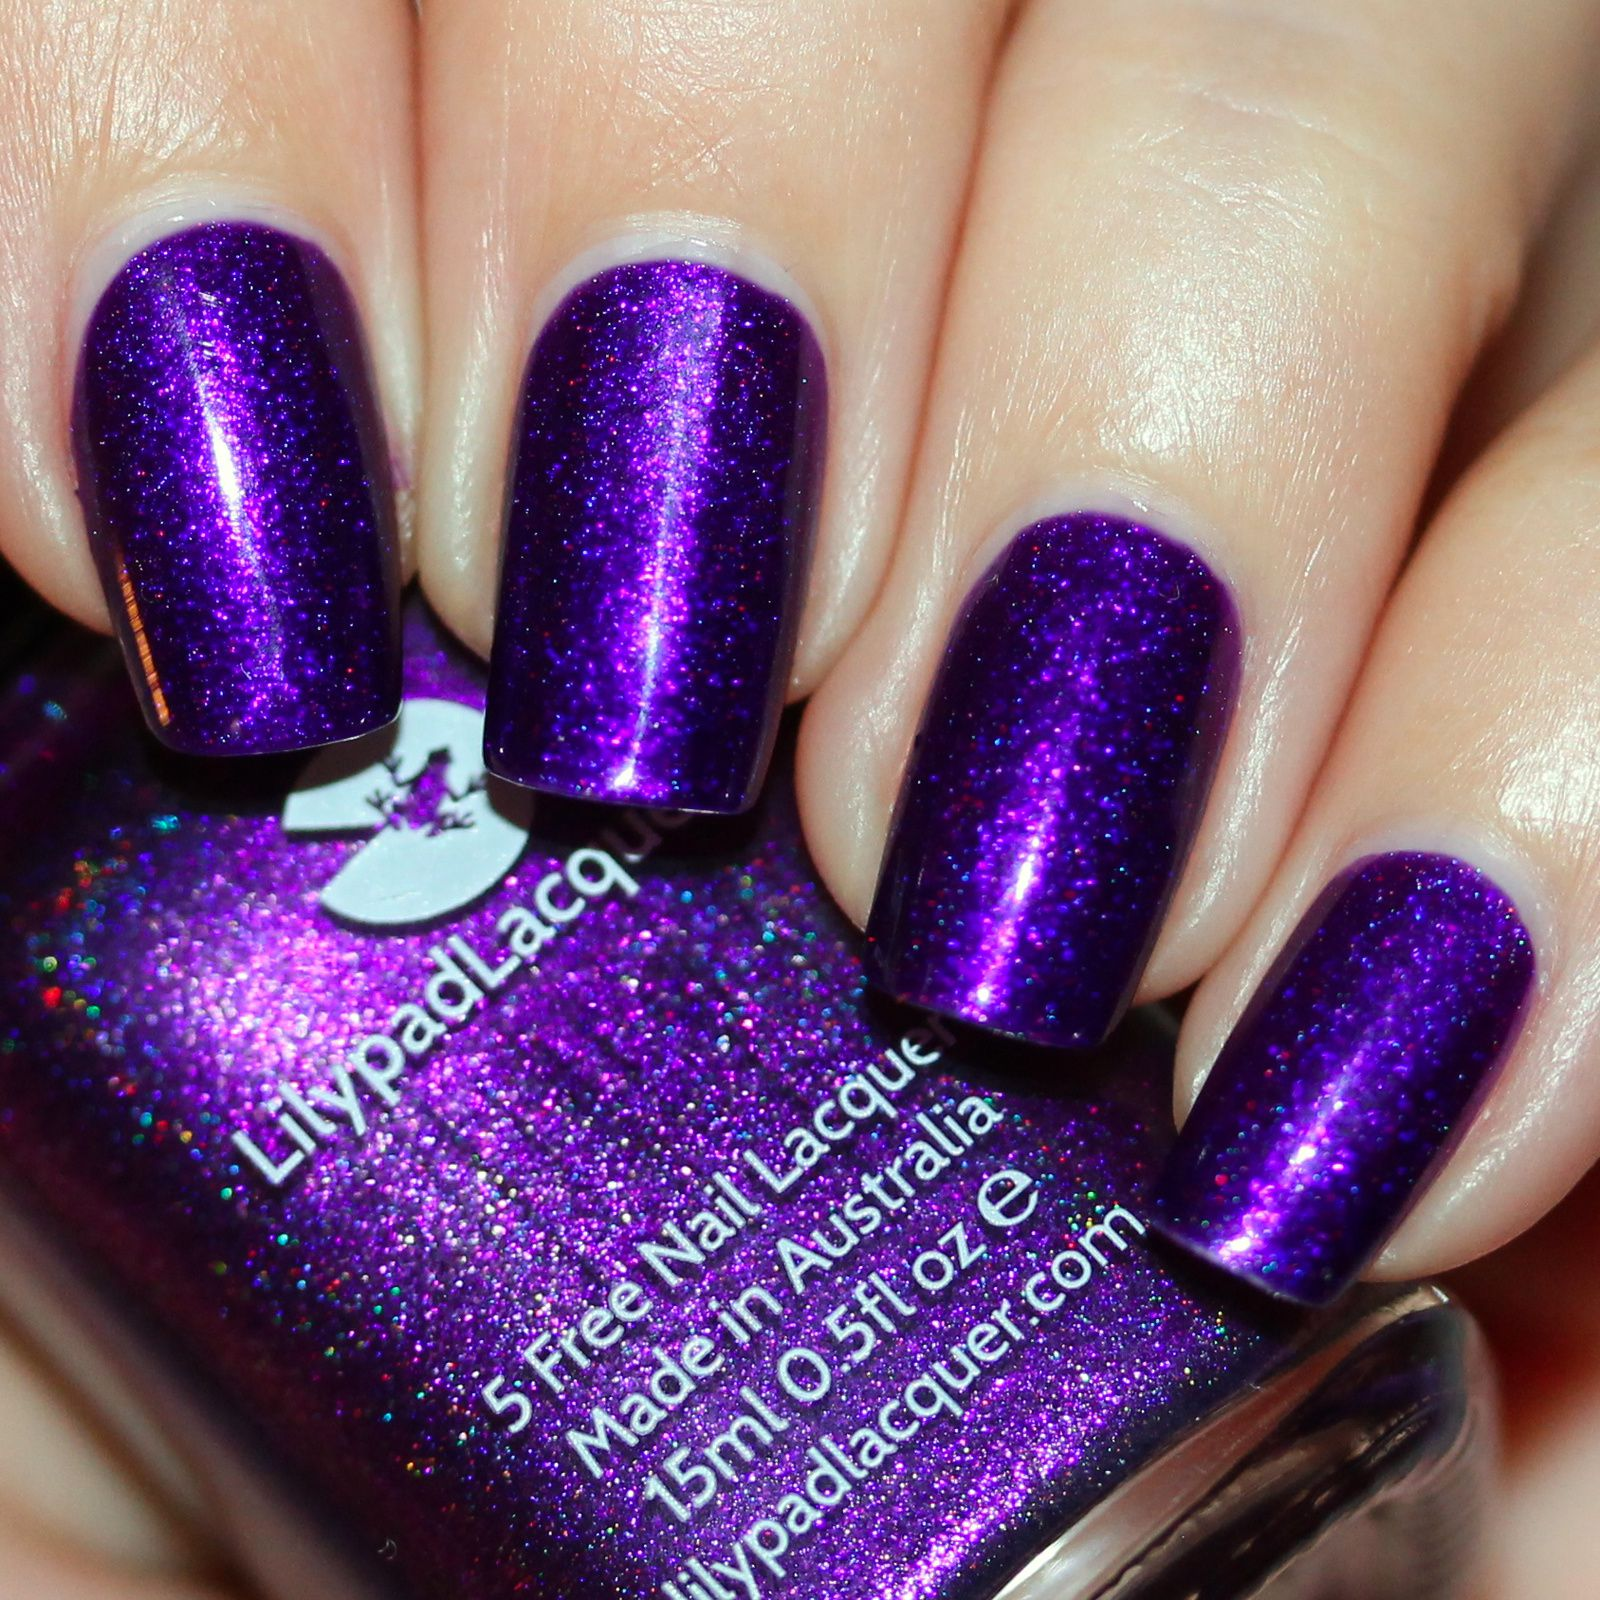 Sally Hansen Complete Care 4-in-1 Extra Moisturizing Nail Treatment / Lilypad Lacquer Halloween 2016 / Poshe Top Coat